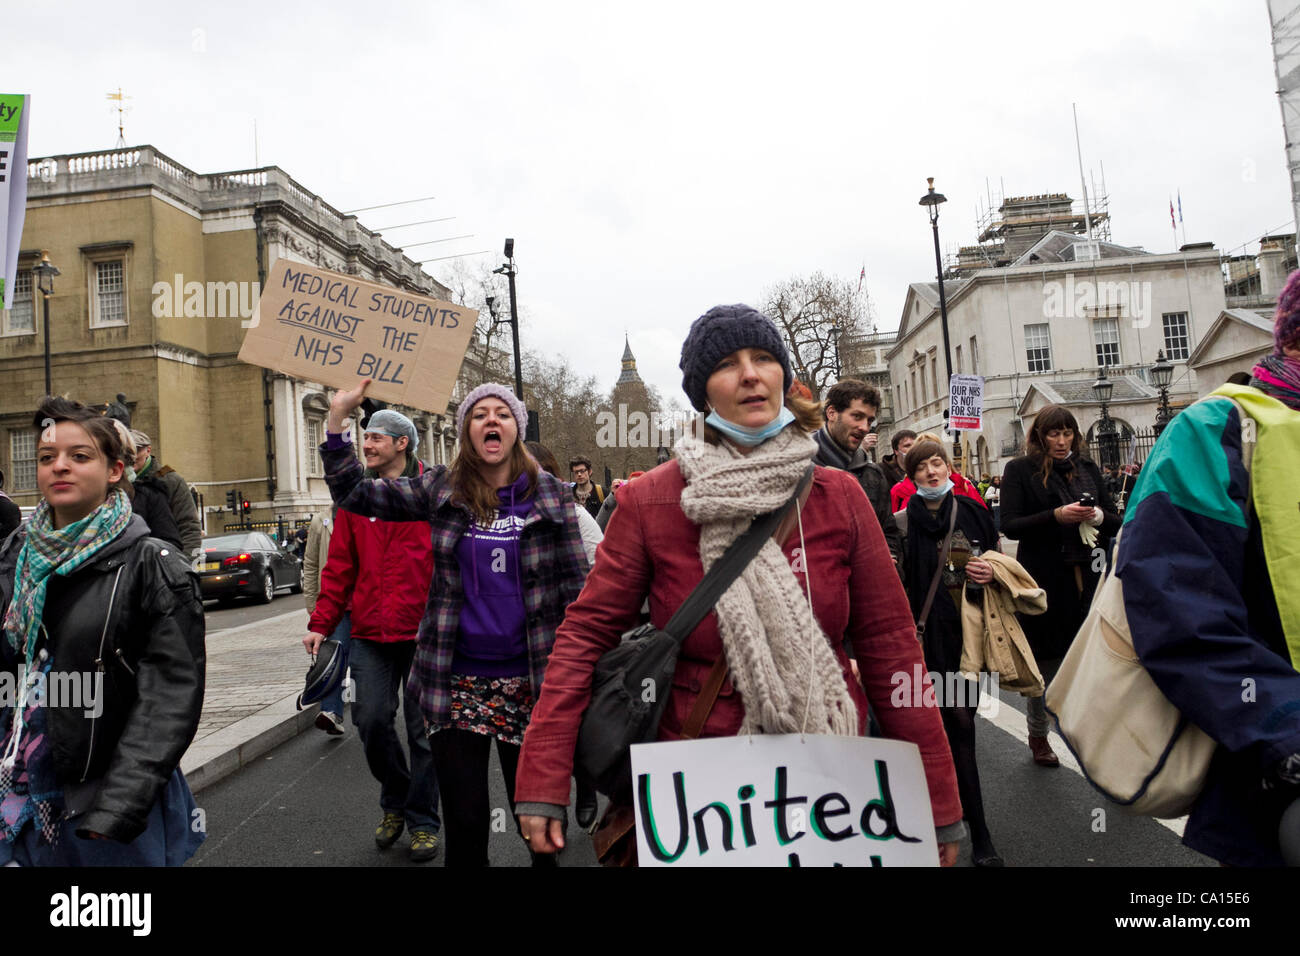 London, UK. 17/03/2012. NHS protesters marched the streets.The government will be voting on the Health and Social - Stock Image